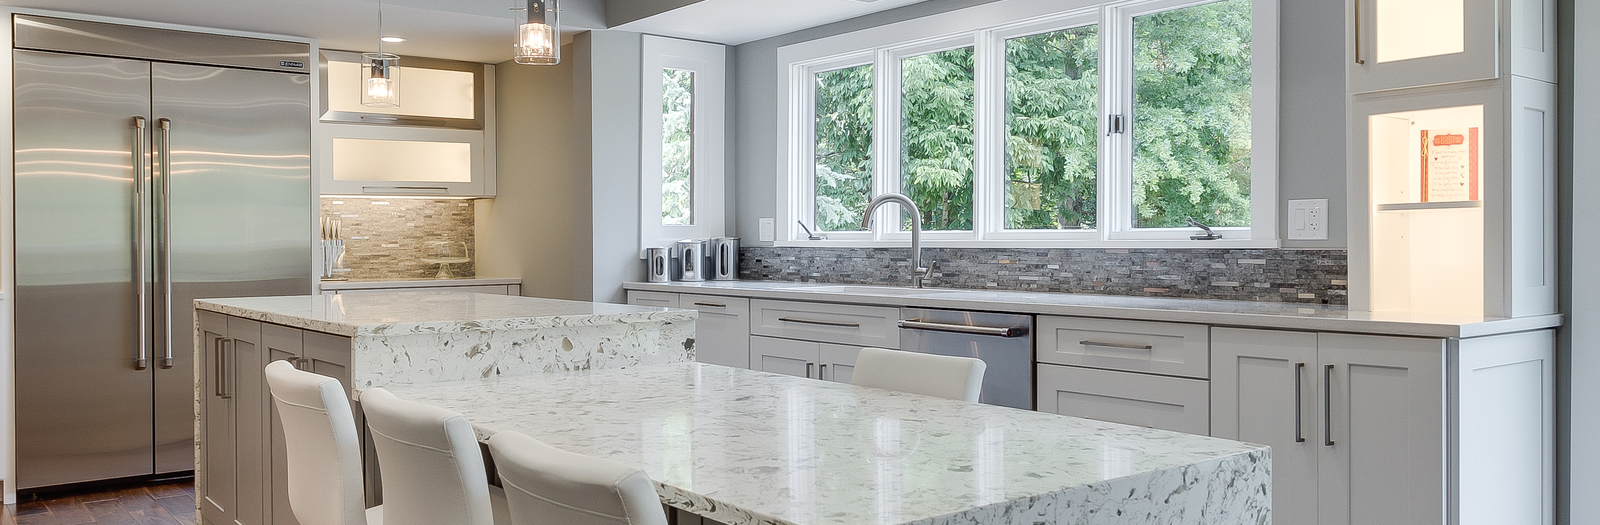 Transitional Kitchen with frosted glass panel cabinets